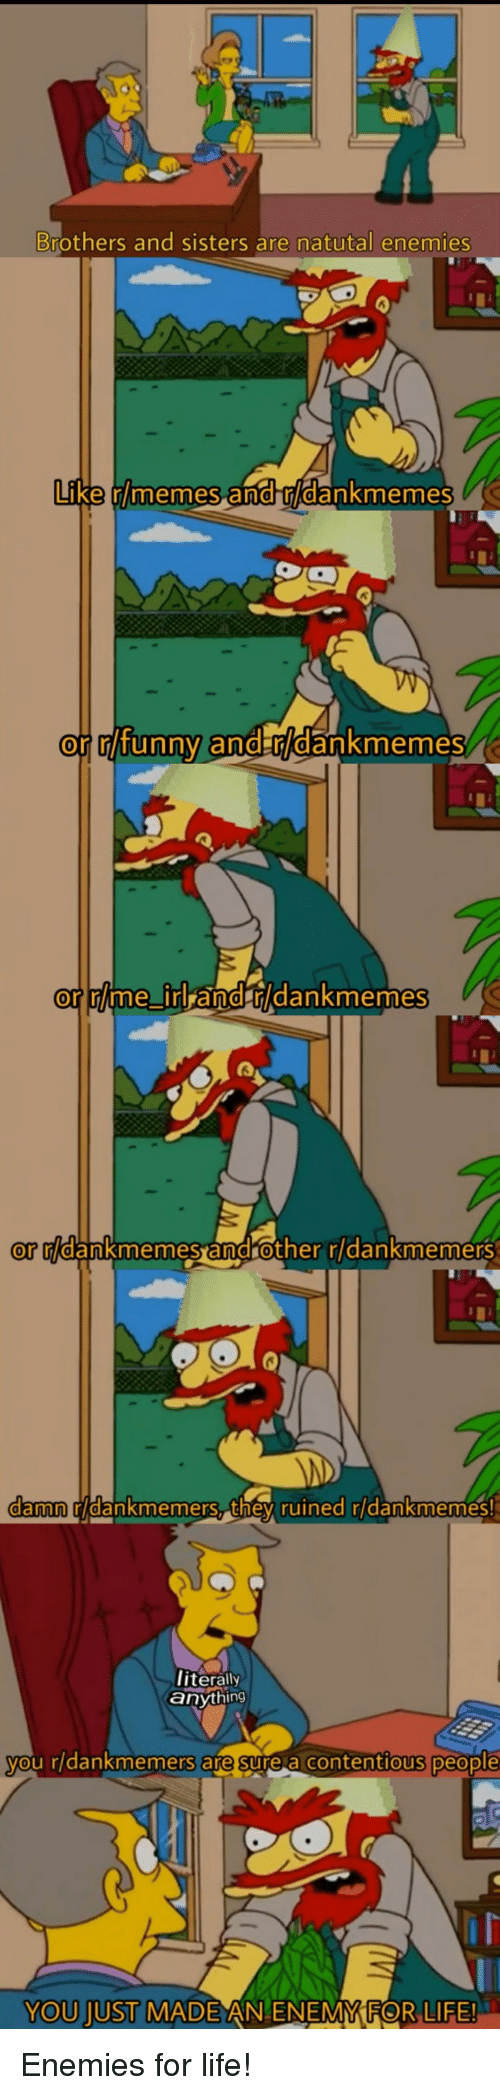 Life, Memes, and Dank Memes: Brothers and sisters are natutal enemies  Like  en  r/memes a  dankmemes  or  mlfunny andr/dankmemes  or lme irl  or rlme irl and rkdankmemes  or ridanknmennes  androther ridankmemersS  damn  ridankmemers, they ruined ridankmemesS!  iterally  anything  ou rldankmemers are sure a contentious people  YOU JUST MAD  E AN ENEMMFOR LIFE